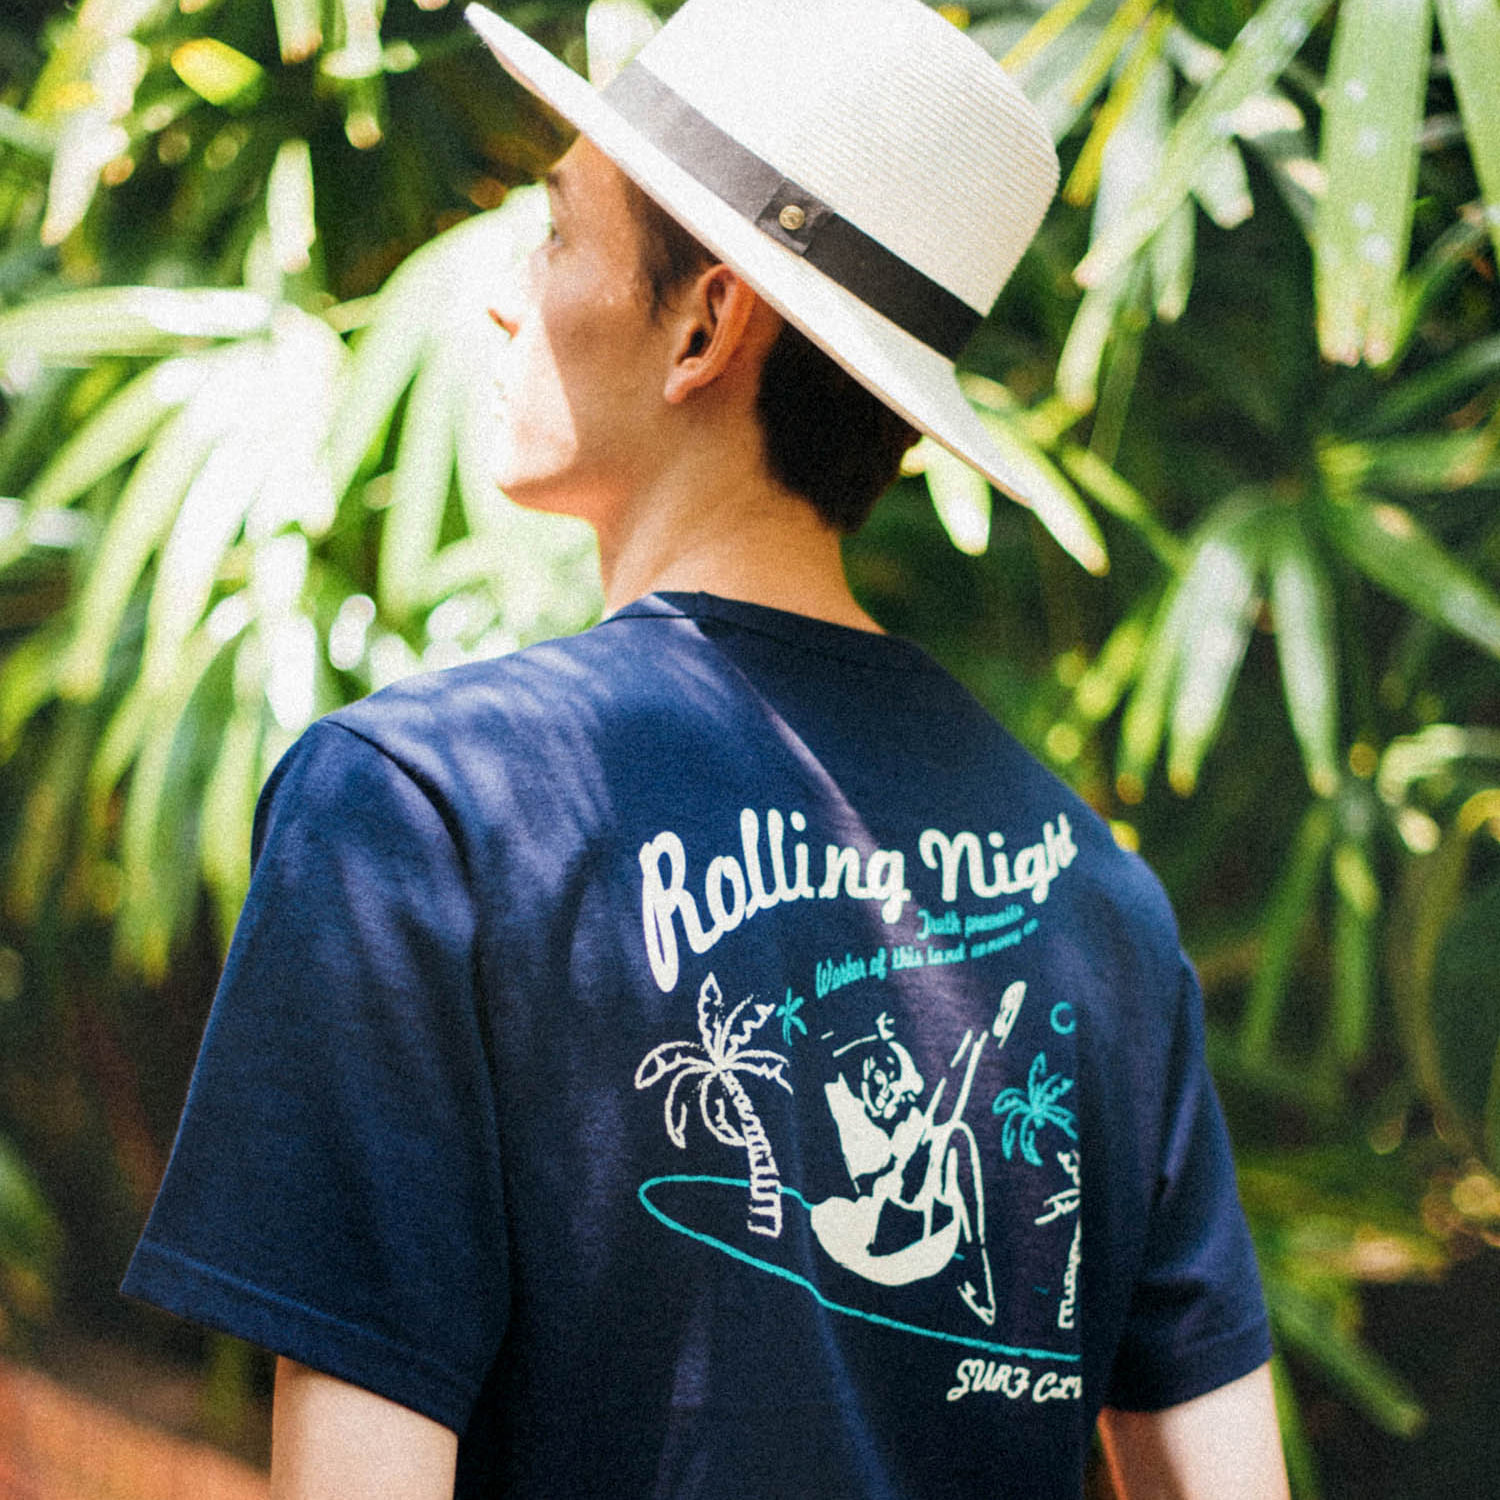 [콘보이] SURF Club 1/2 tee navy